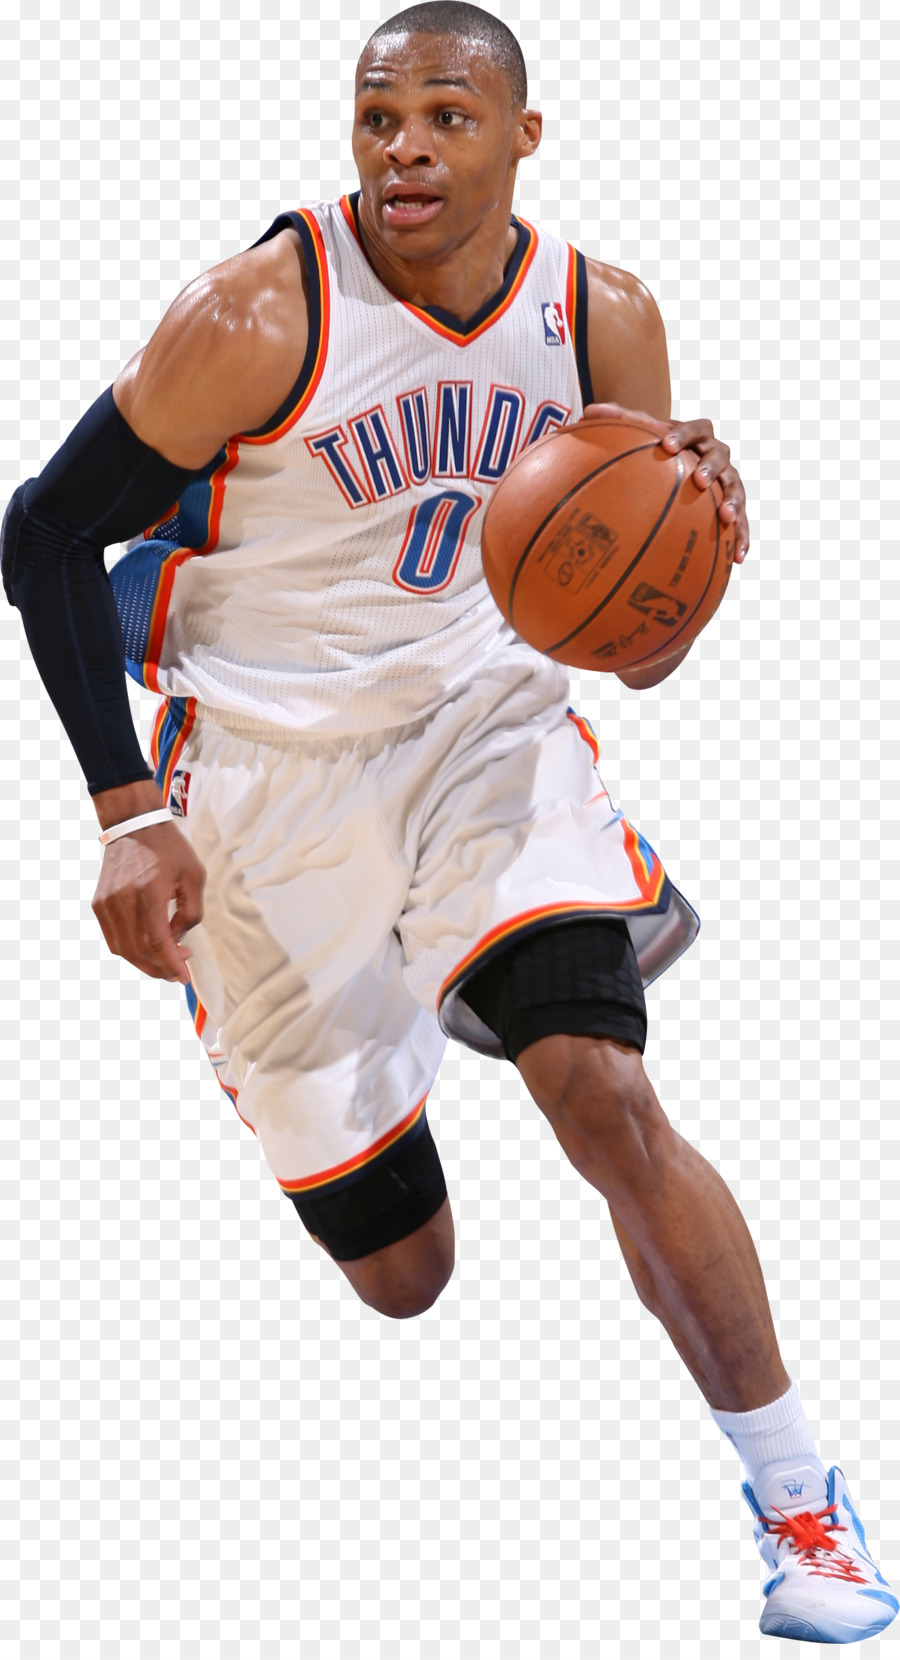 Russell Westbrook Png Hd - Russell Westbrook Oklahoma City Thunder #505210 - PNG Images - PNGio